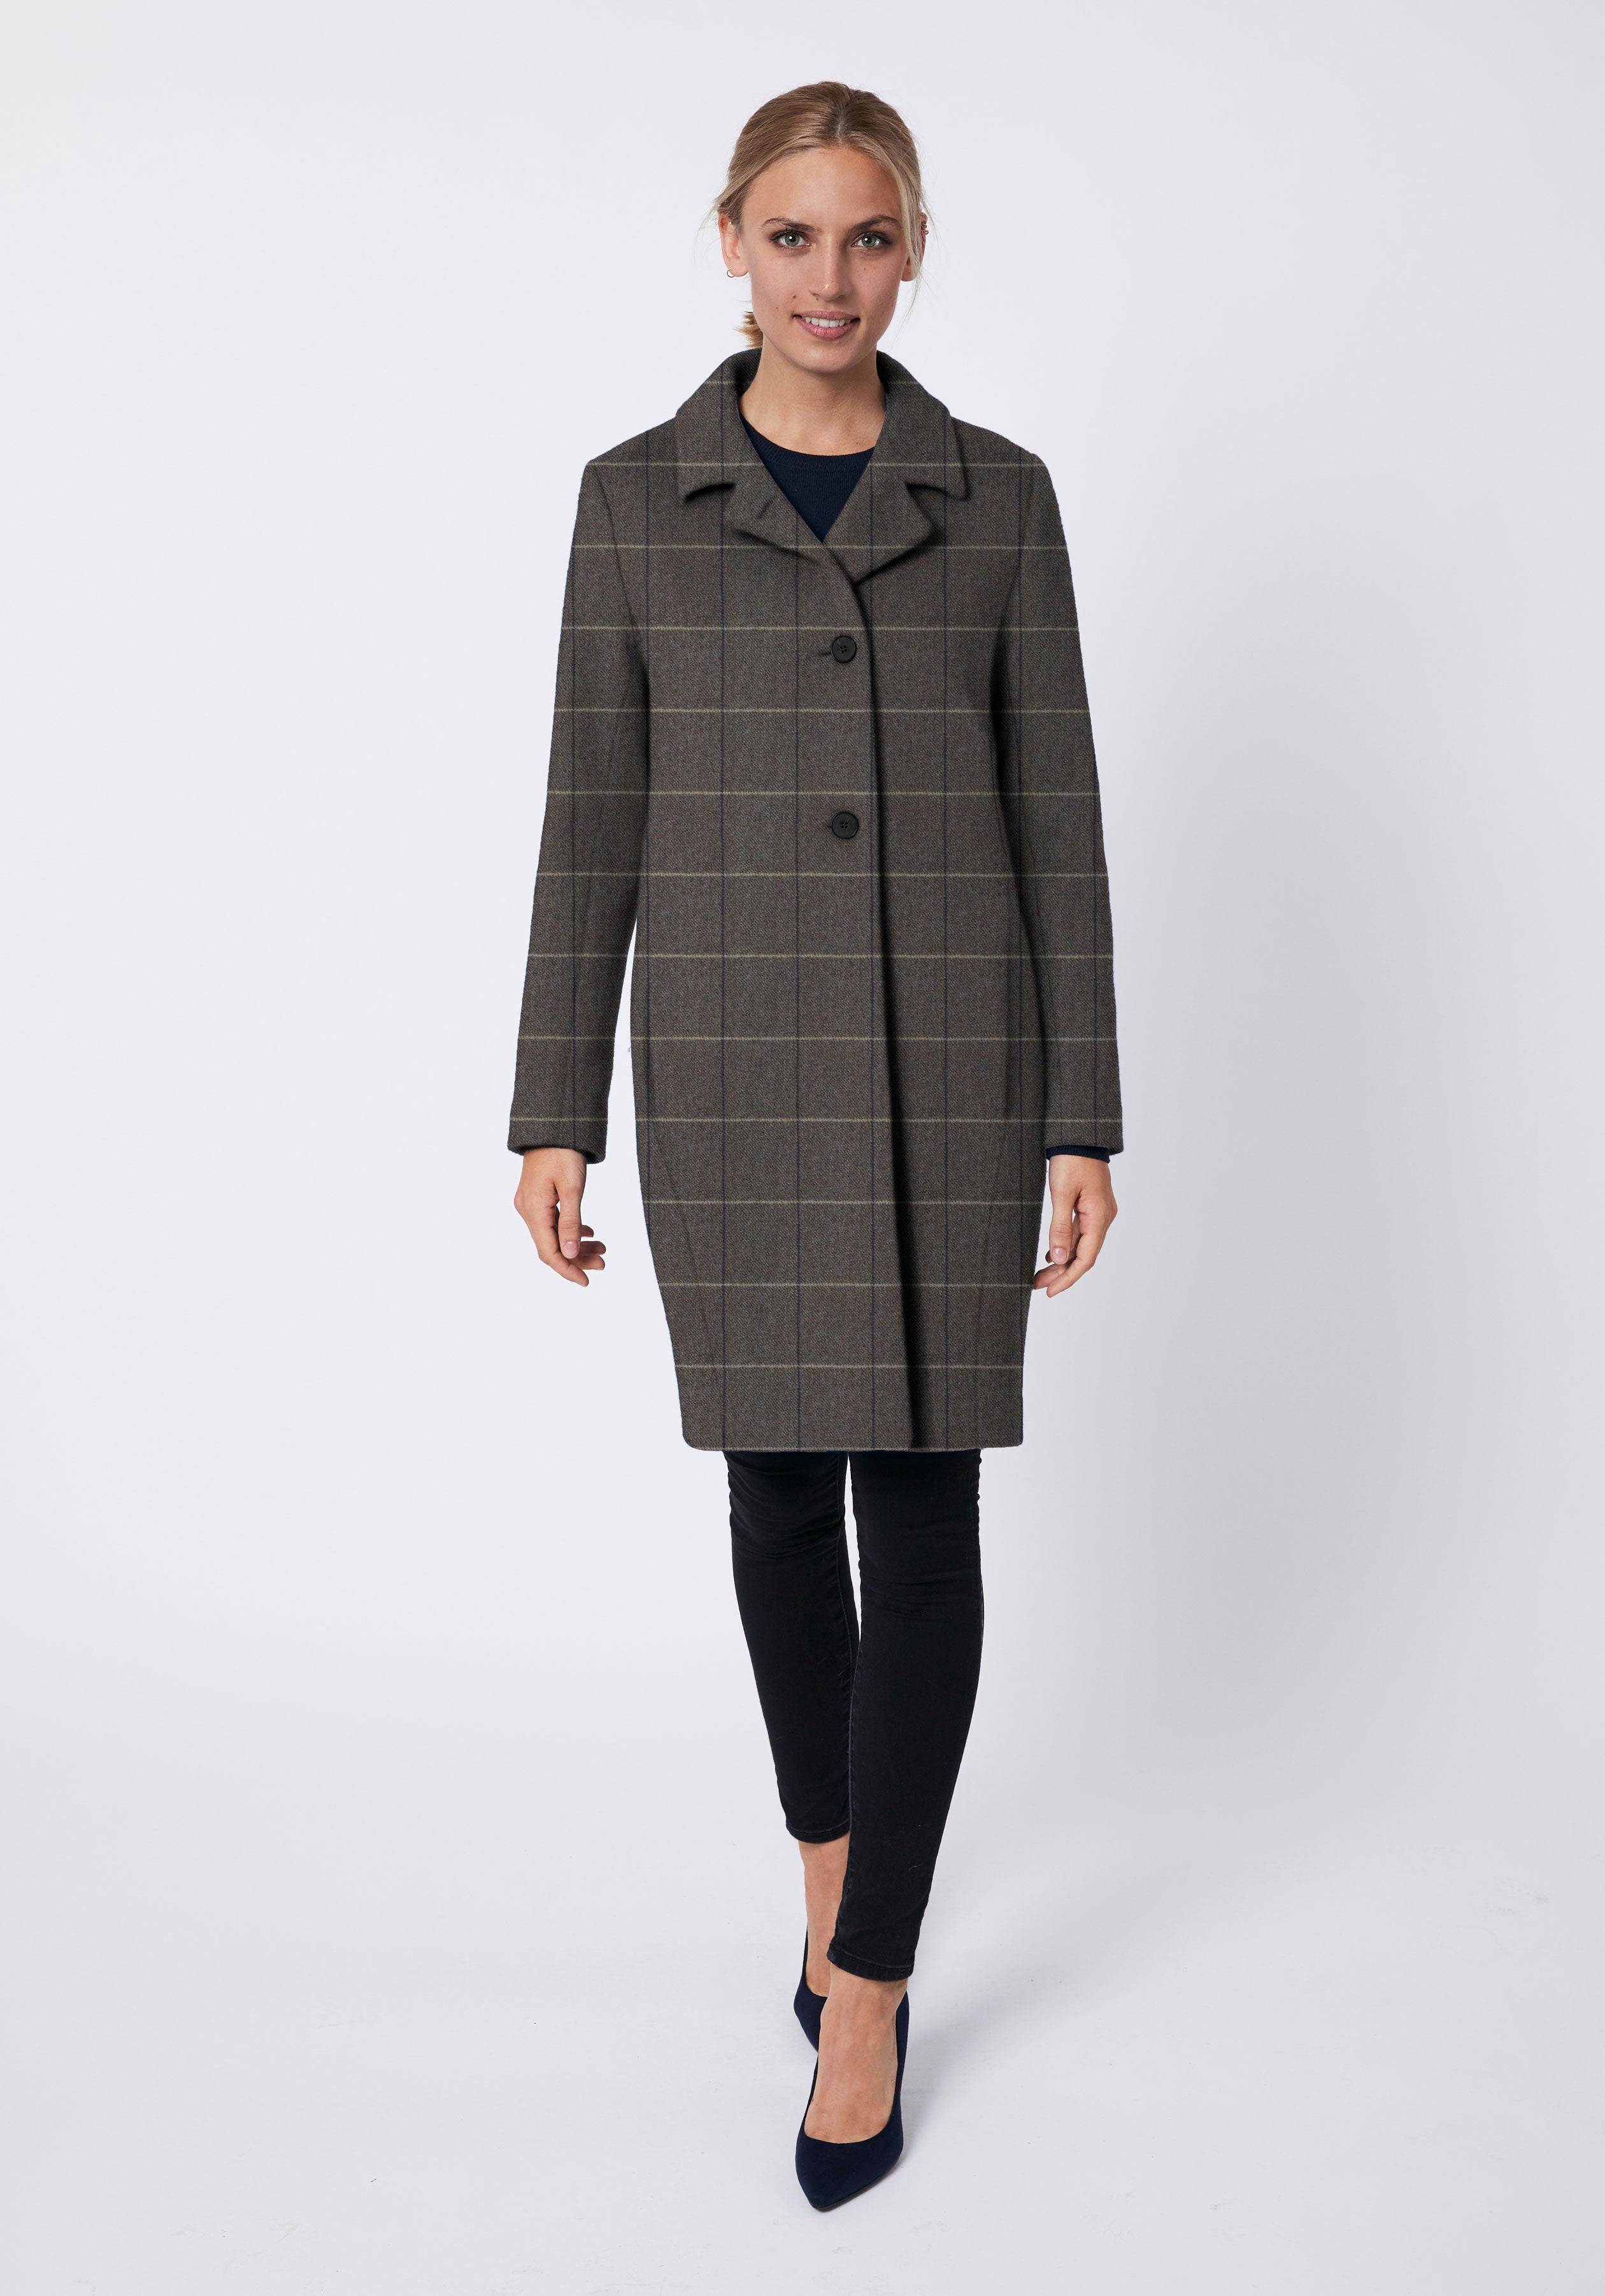 Jackson Coat in Taupe with Cream Check